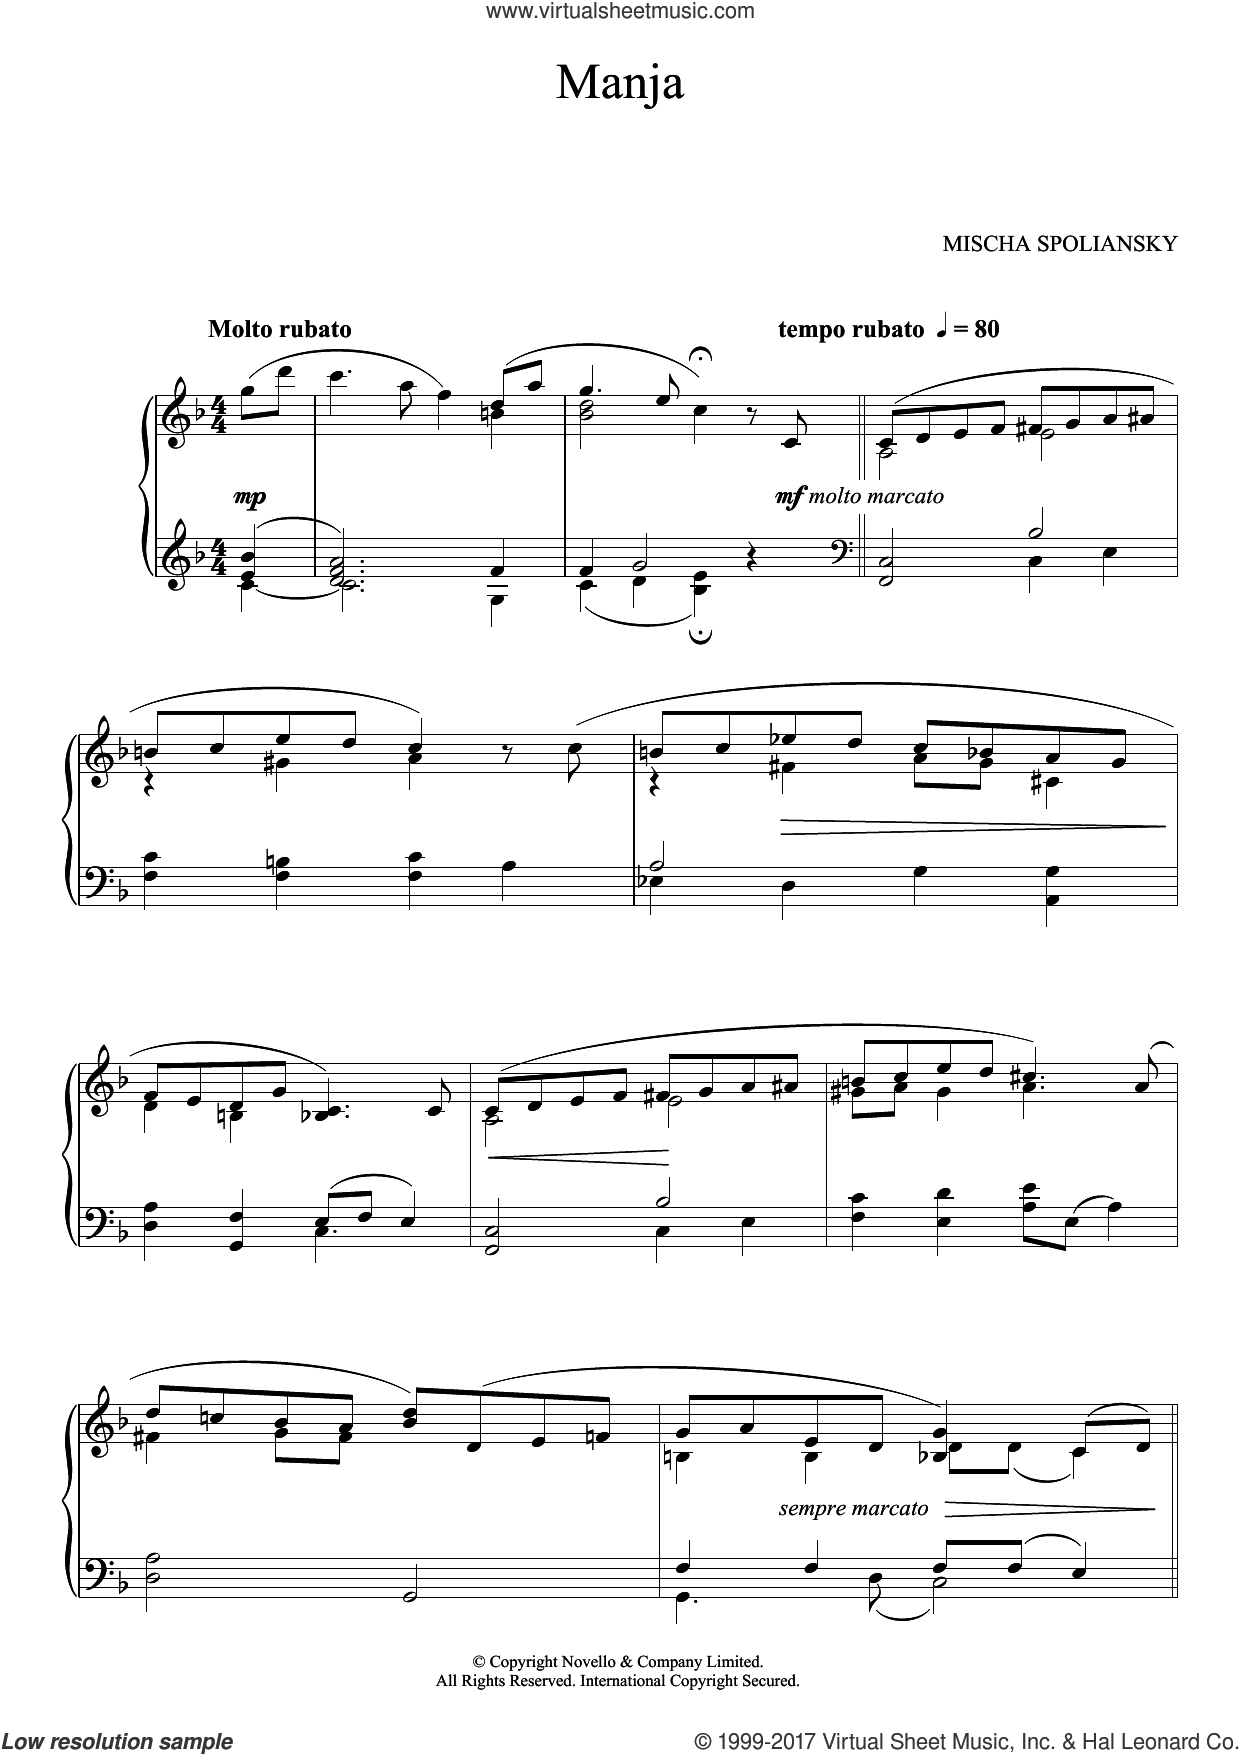 Manja sheet music for piano solo by Mischa Spoliansky, classical score, intermediate. Score Image Preview.